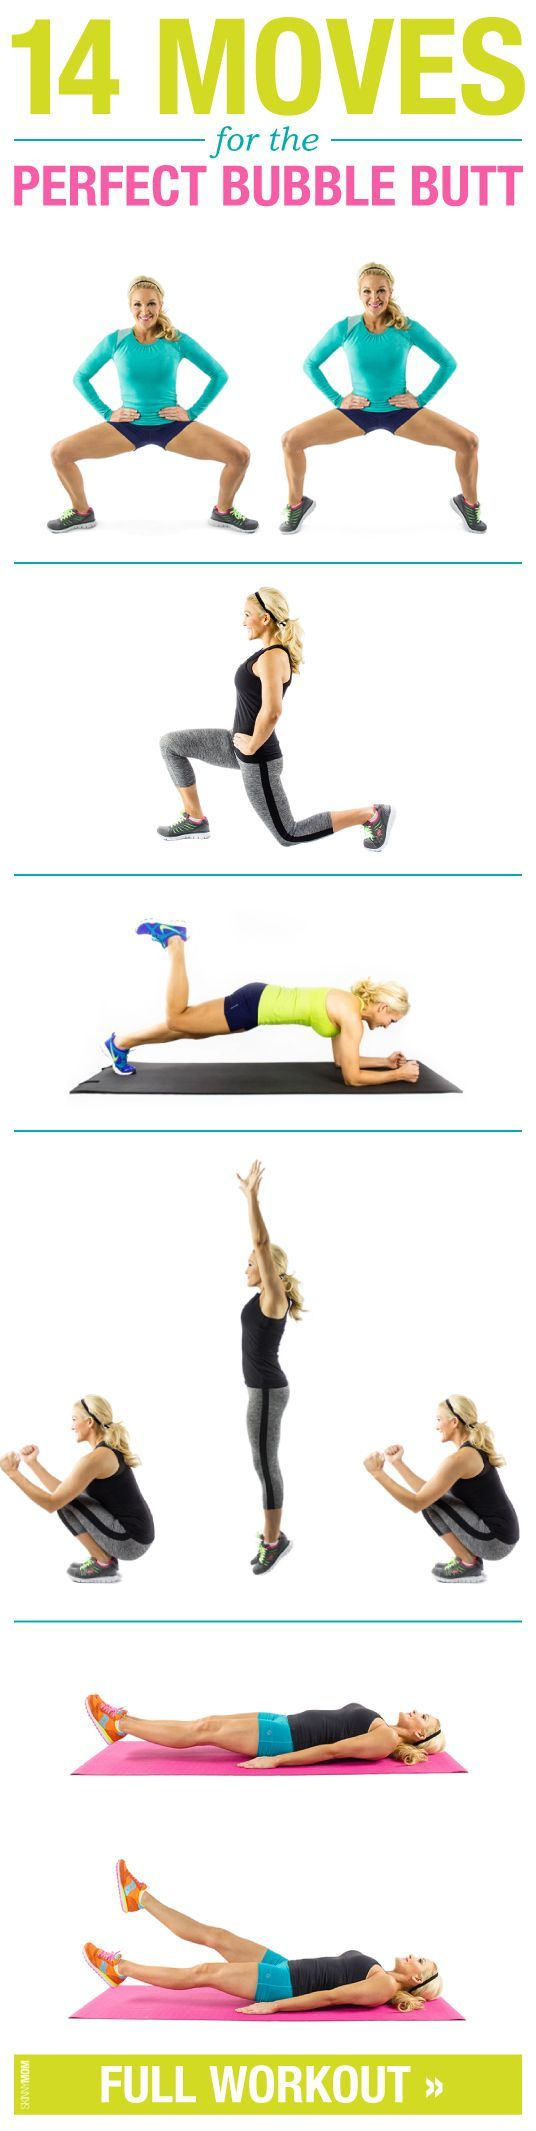 Get a nice and toned booty with these moves! #fitness #booty